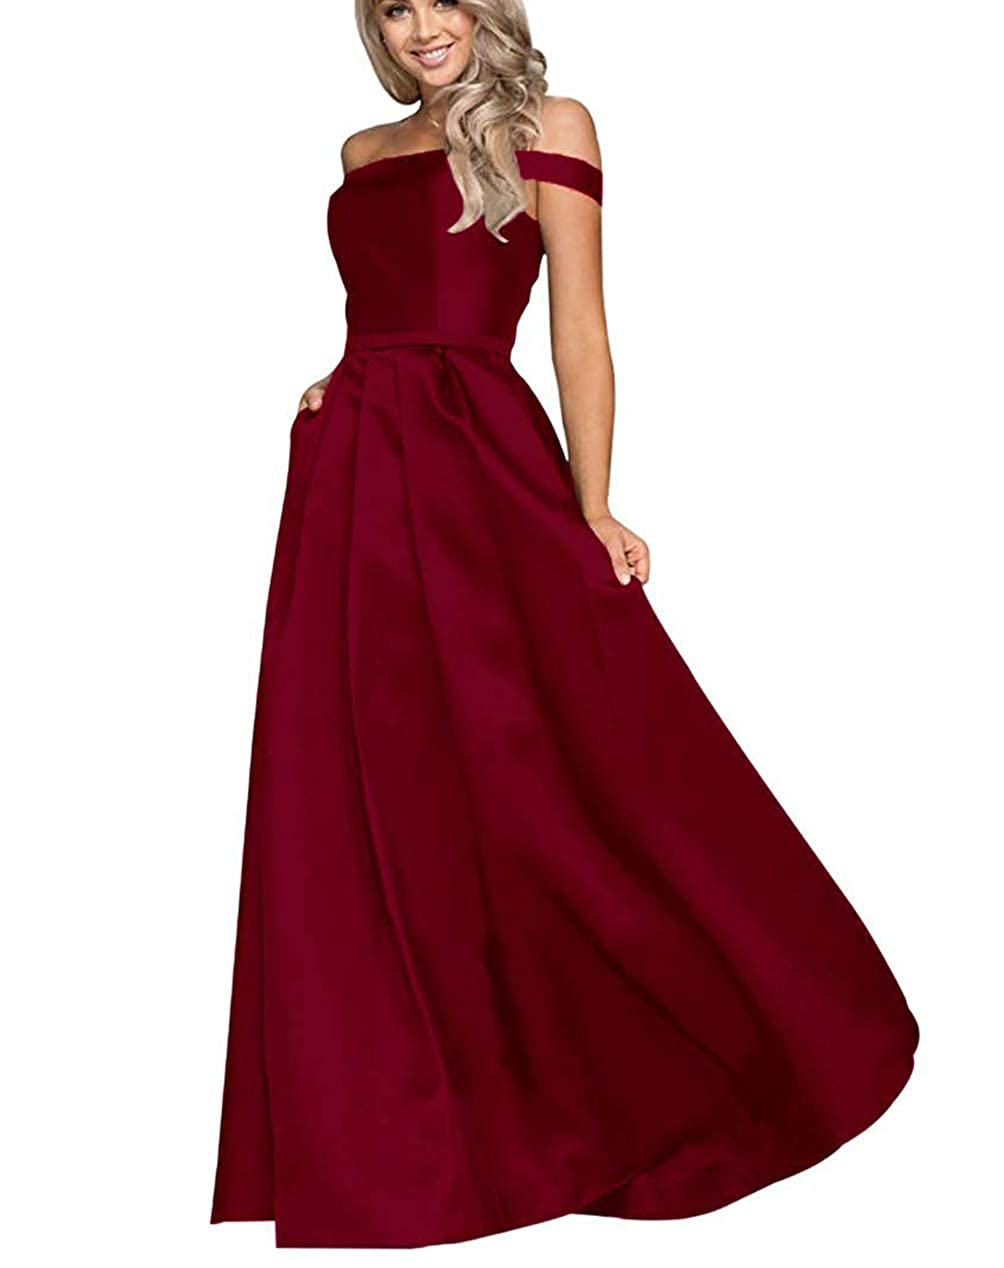 Dark Red Tmaoomo Aline Off The Shoulder Satin Prom Party Dresses for Women Formal Evening Gowns